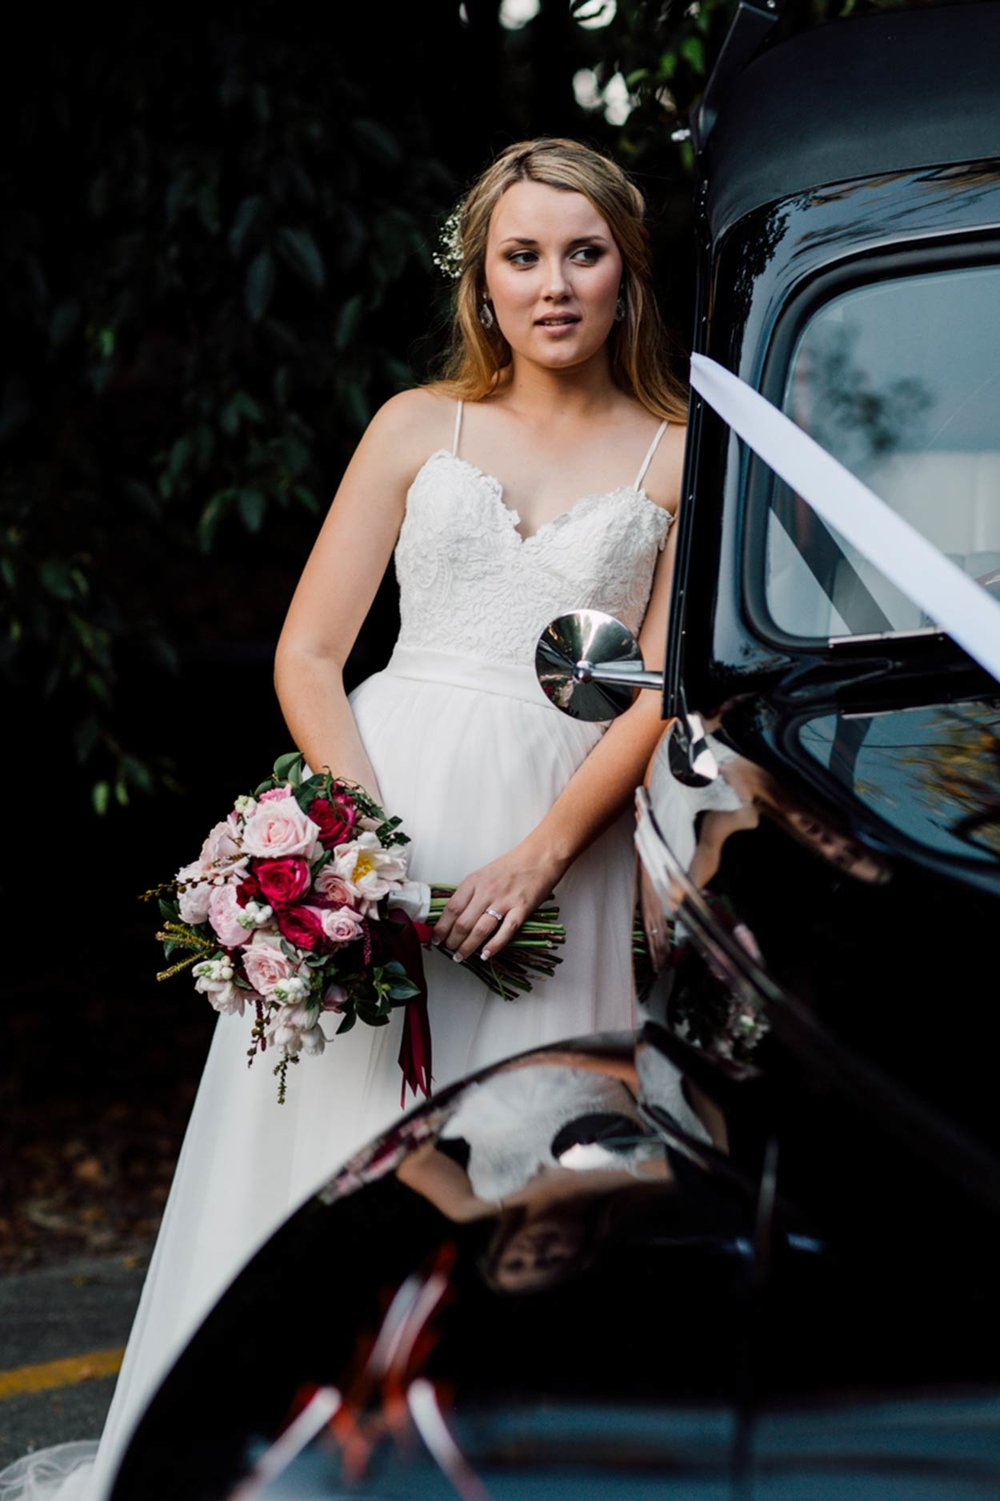 Top Noosa Heads Wedding Portrait Photographer, Sunshine Coast - Sunshine Coast, Queensland, Australian Destination